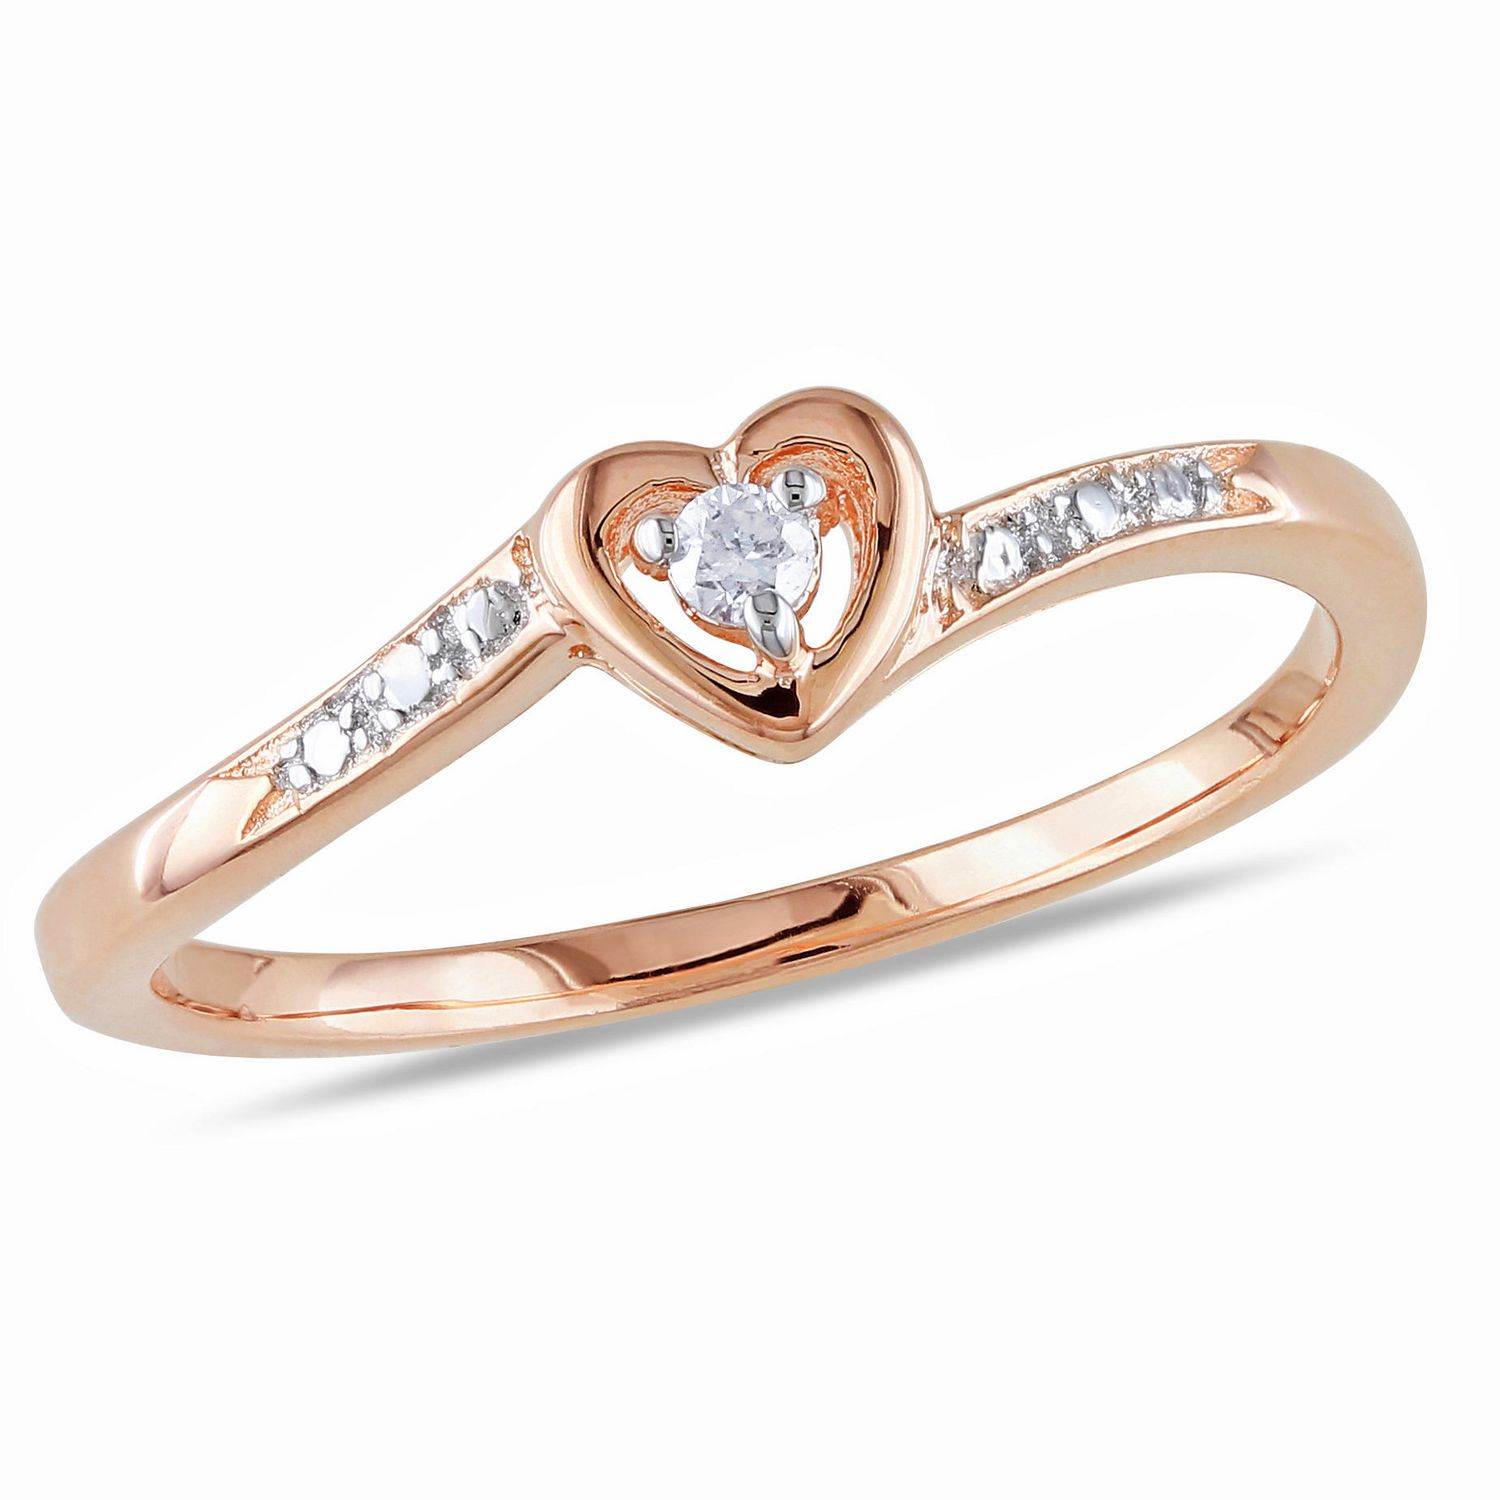 kelege ring with accents rings caymancode diamond kpr engagement jack pink wedding